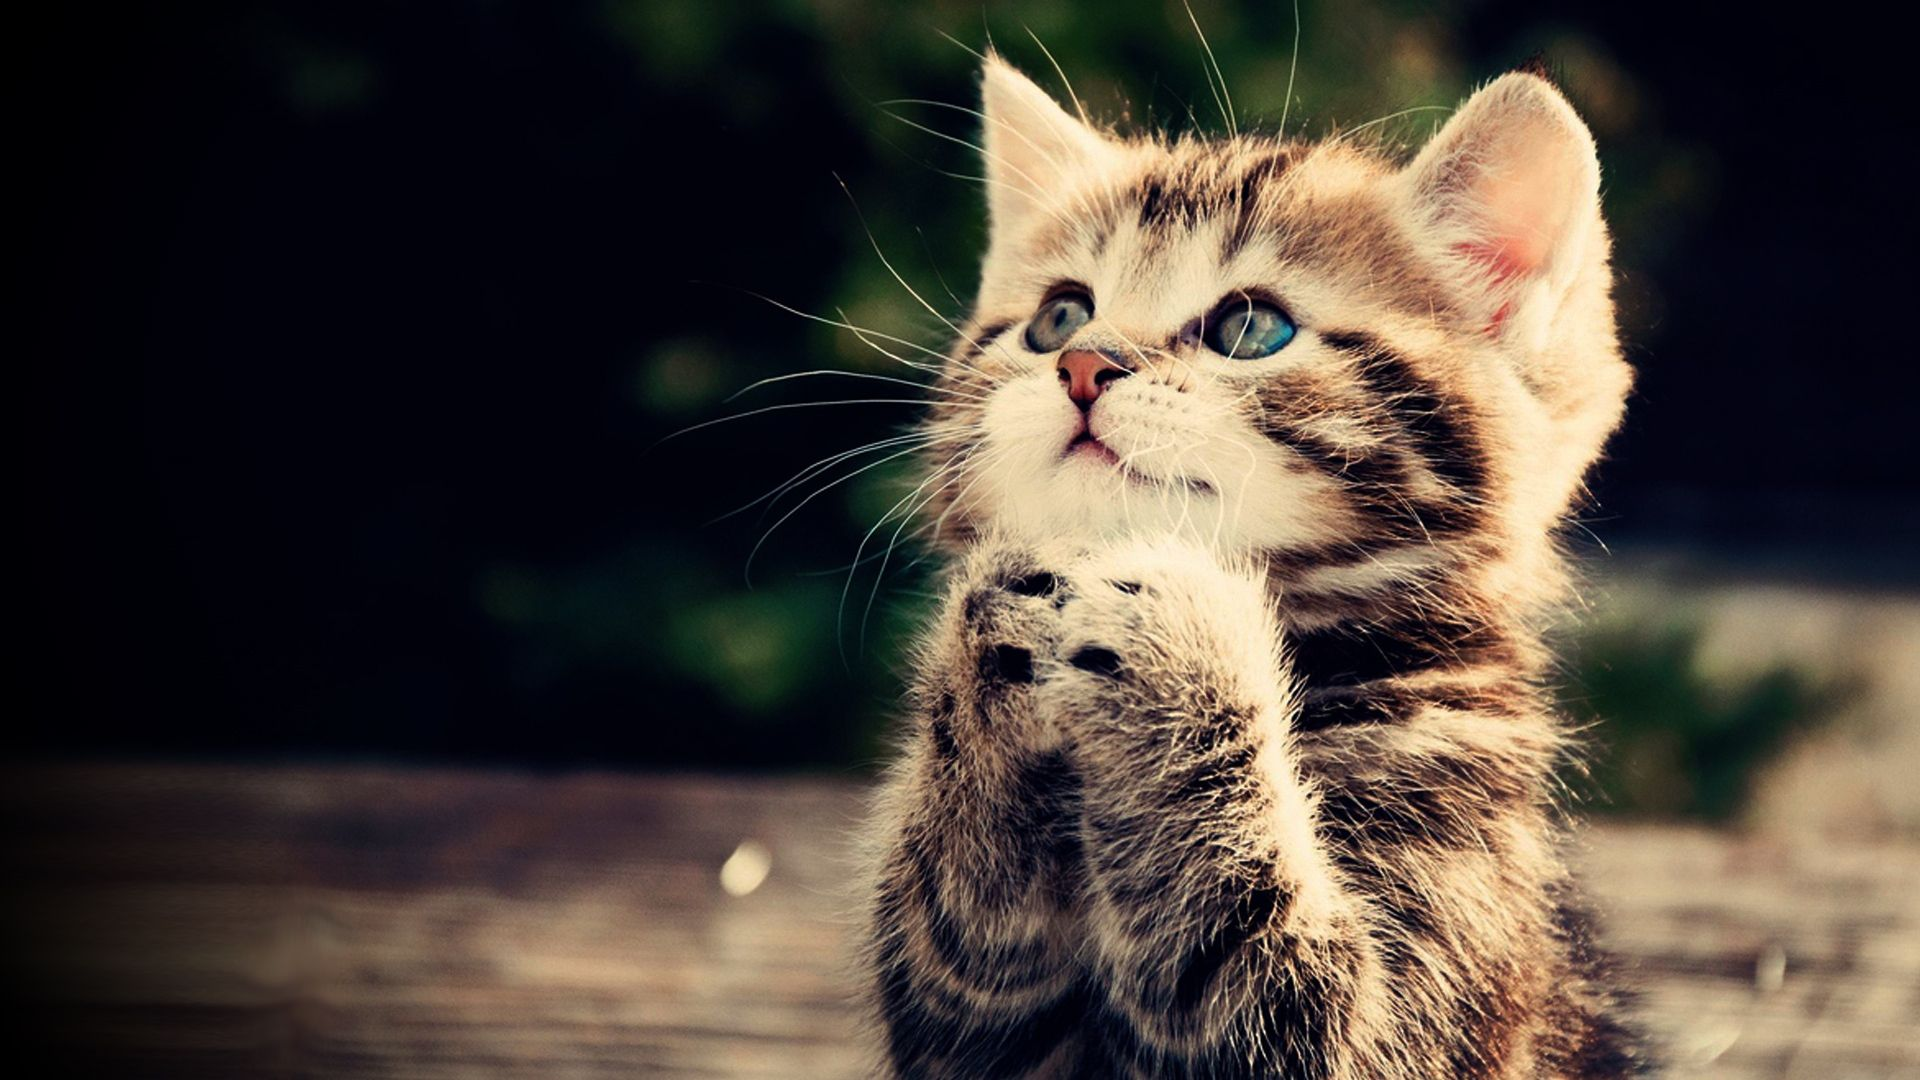 Funny Kitten Wallpapers - Top Free